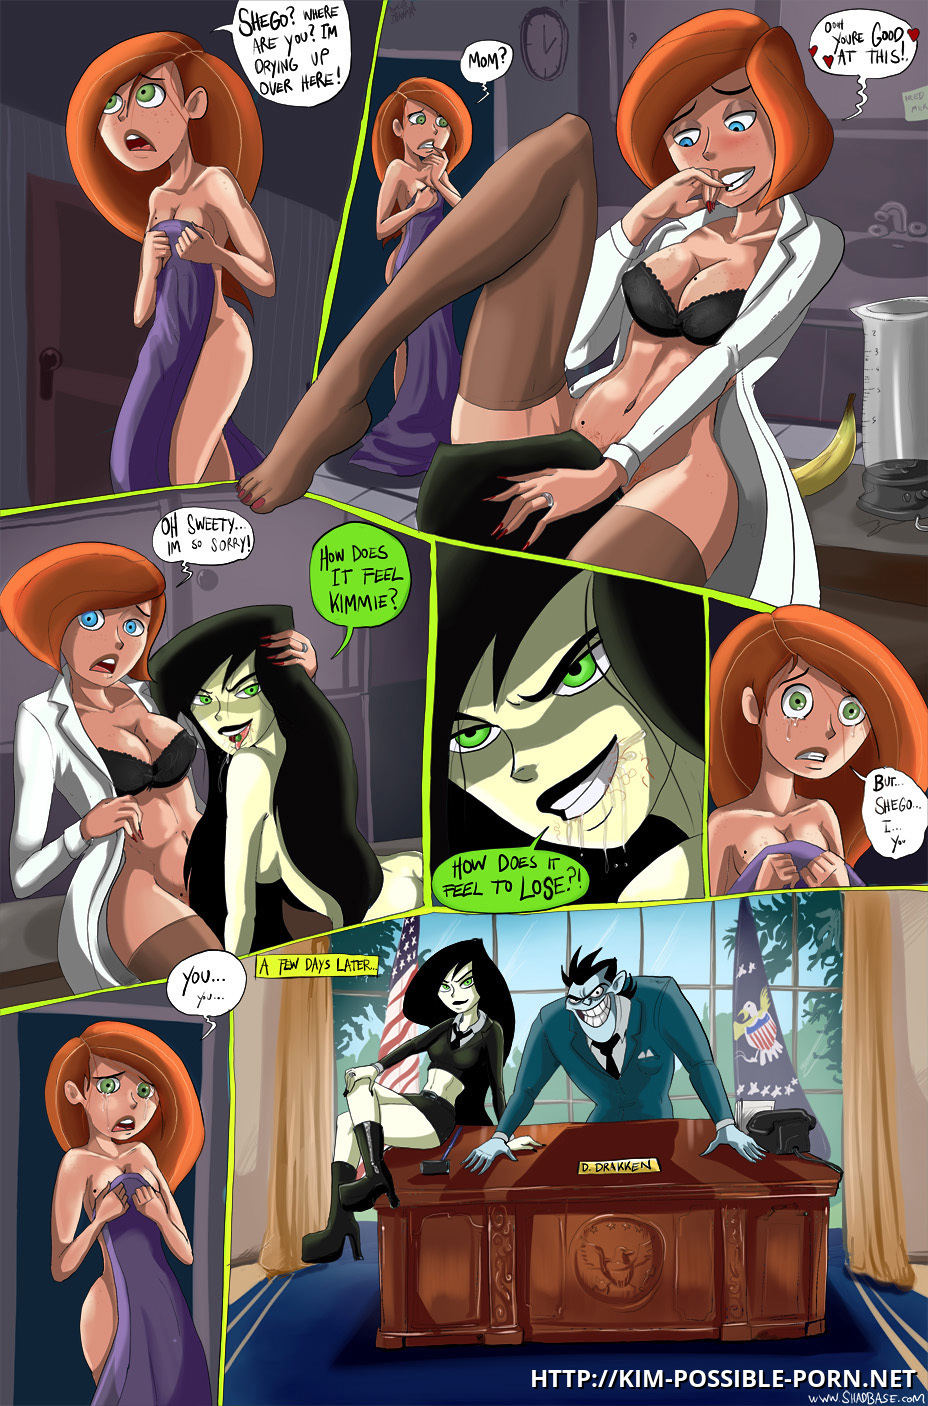 Kim Possible Sex Videos